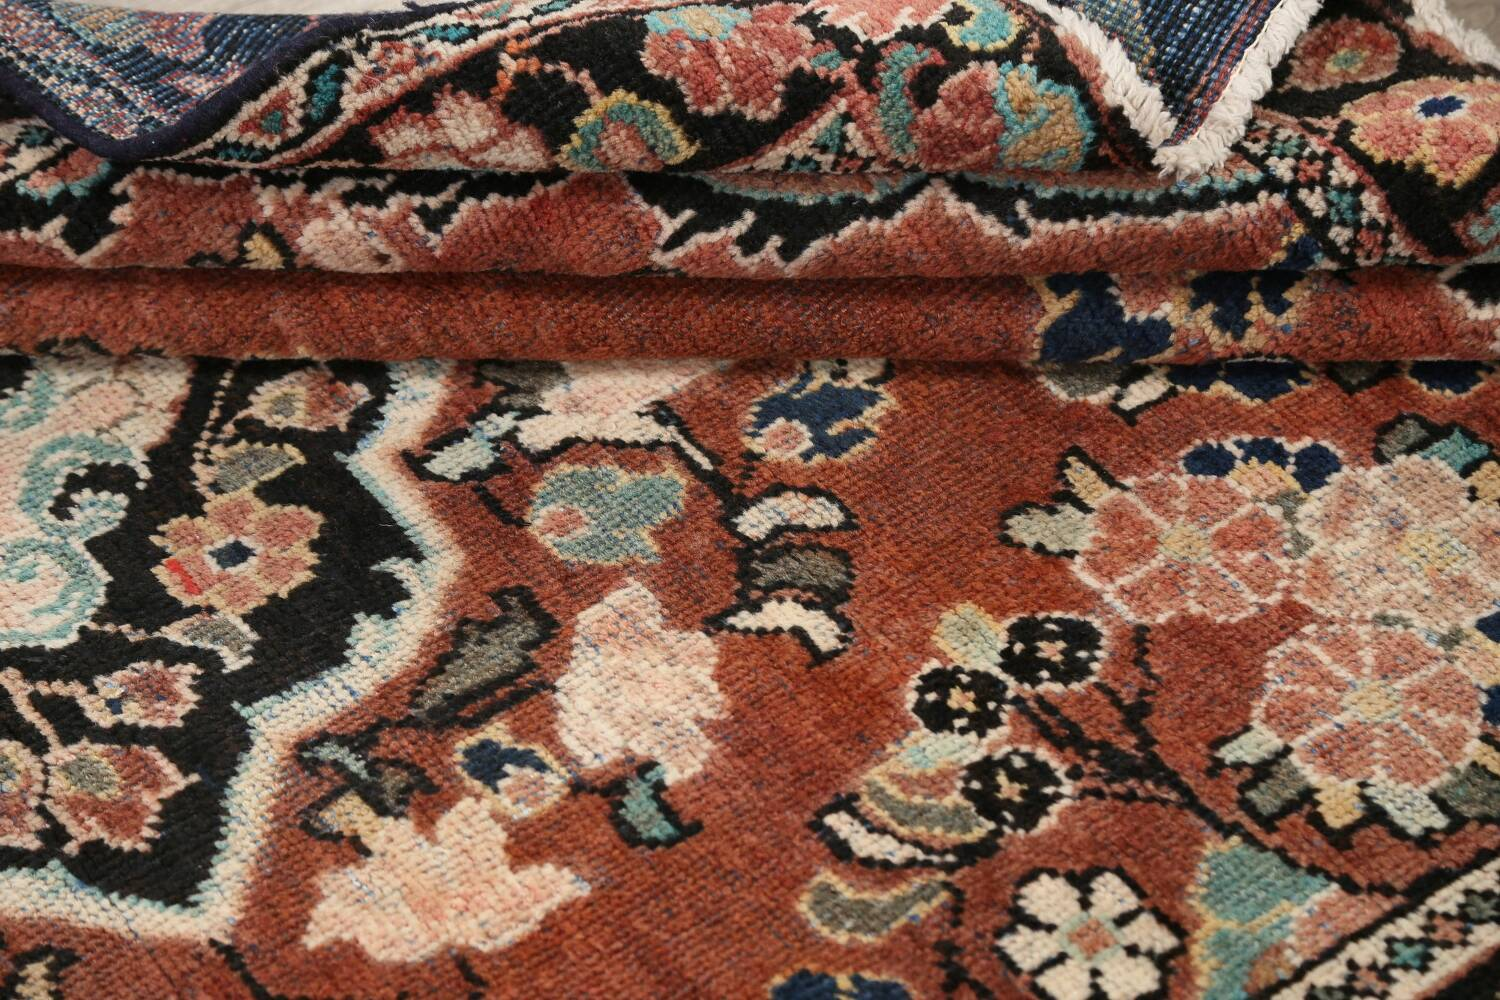 Antique Floral Mahal Persian Area Rug 4x6 image 15